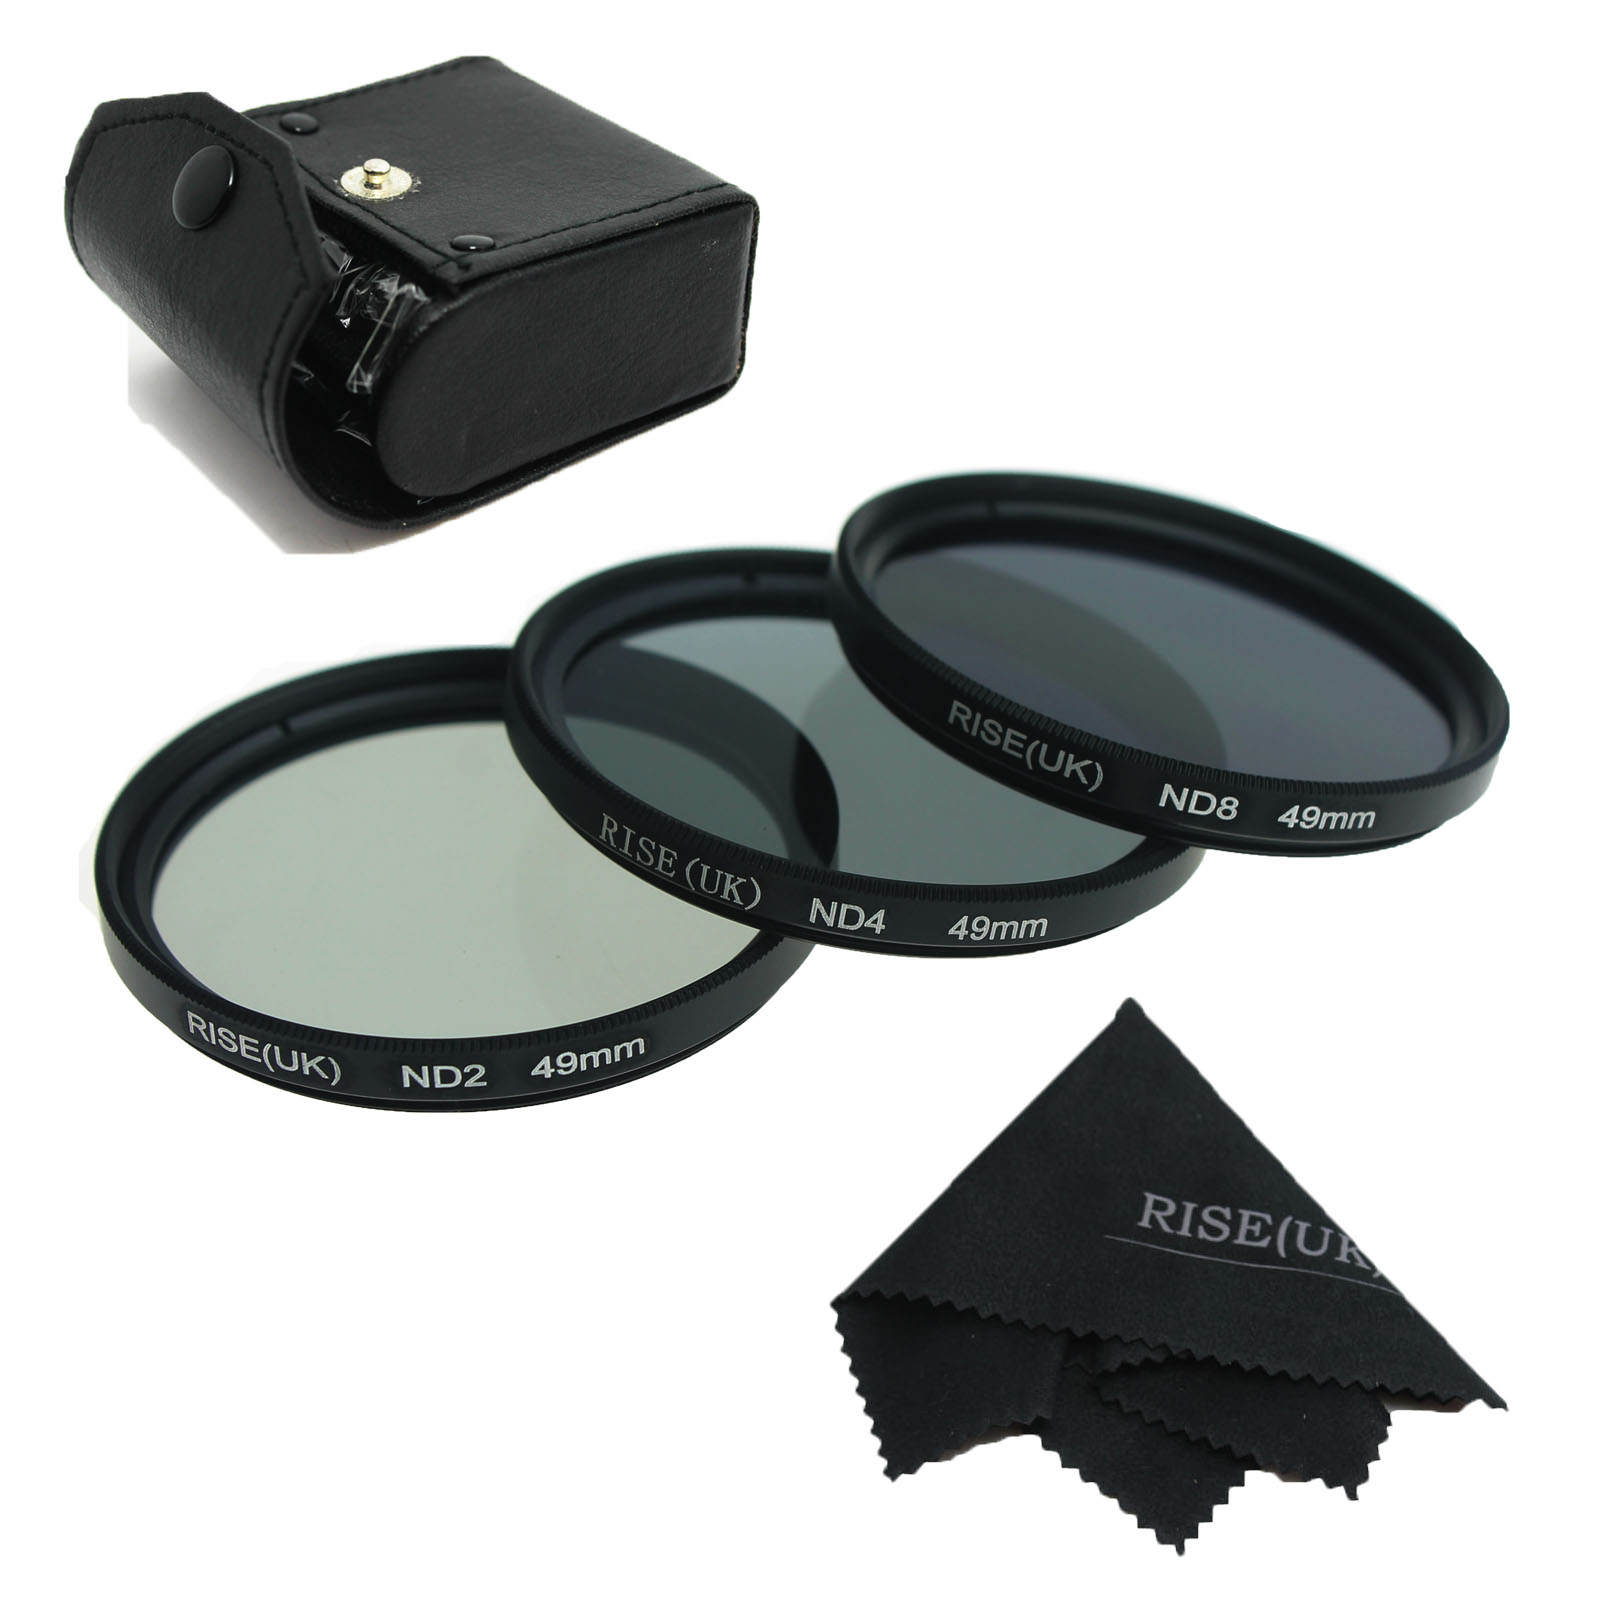 Rise (UK) 49mm 52mm 55mm 58mm 62mm 67mm 72mm 77mm neutral filtro de densidad kit ND2 ND4 ND8 nd 2 4 8